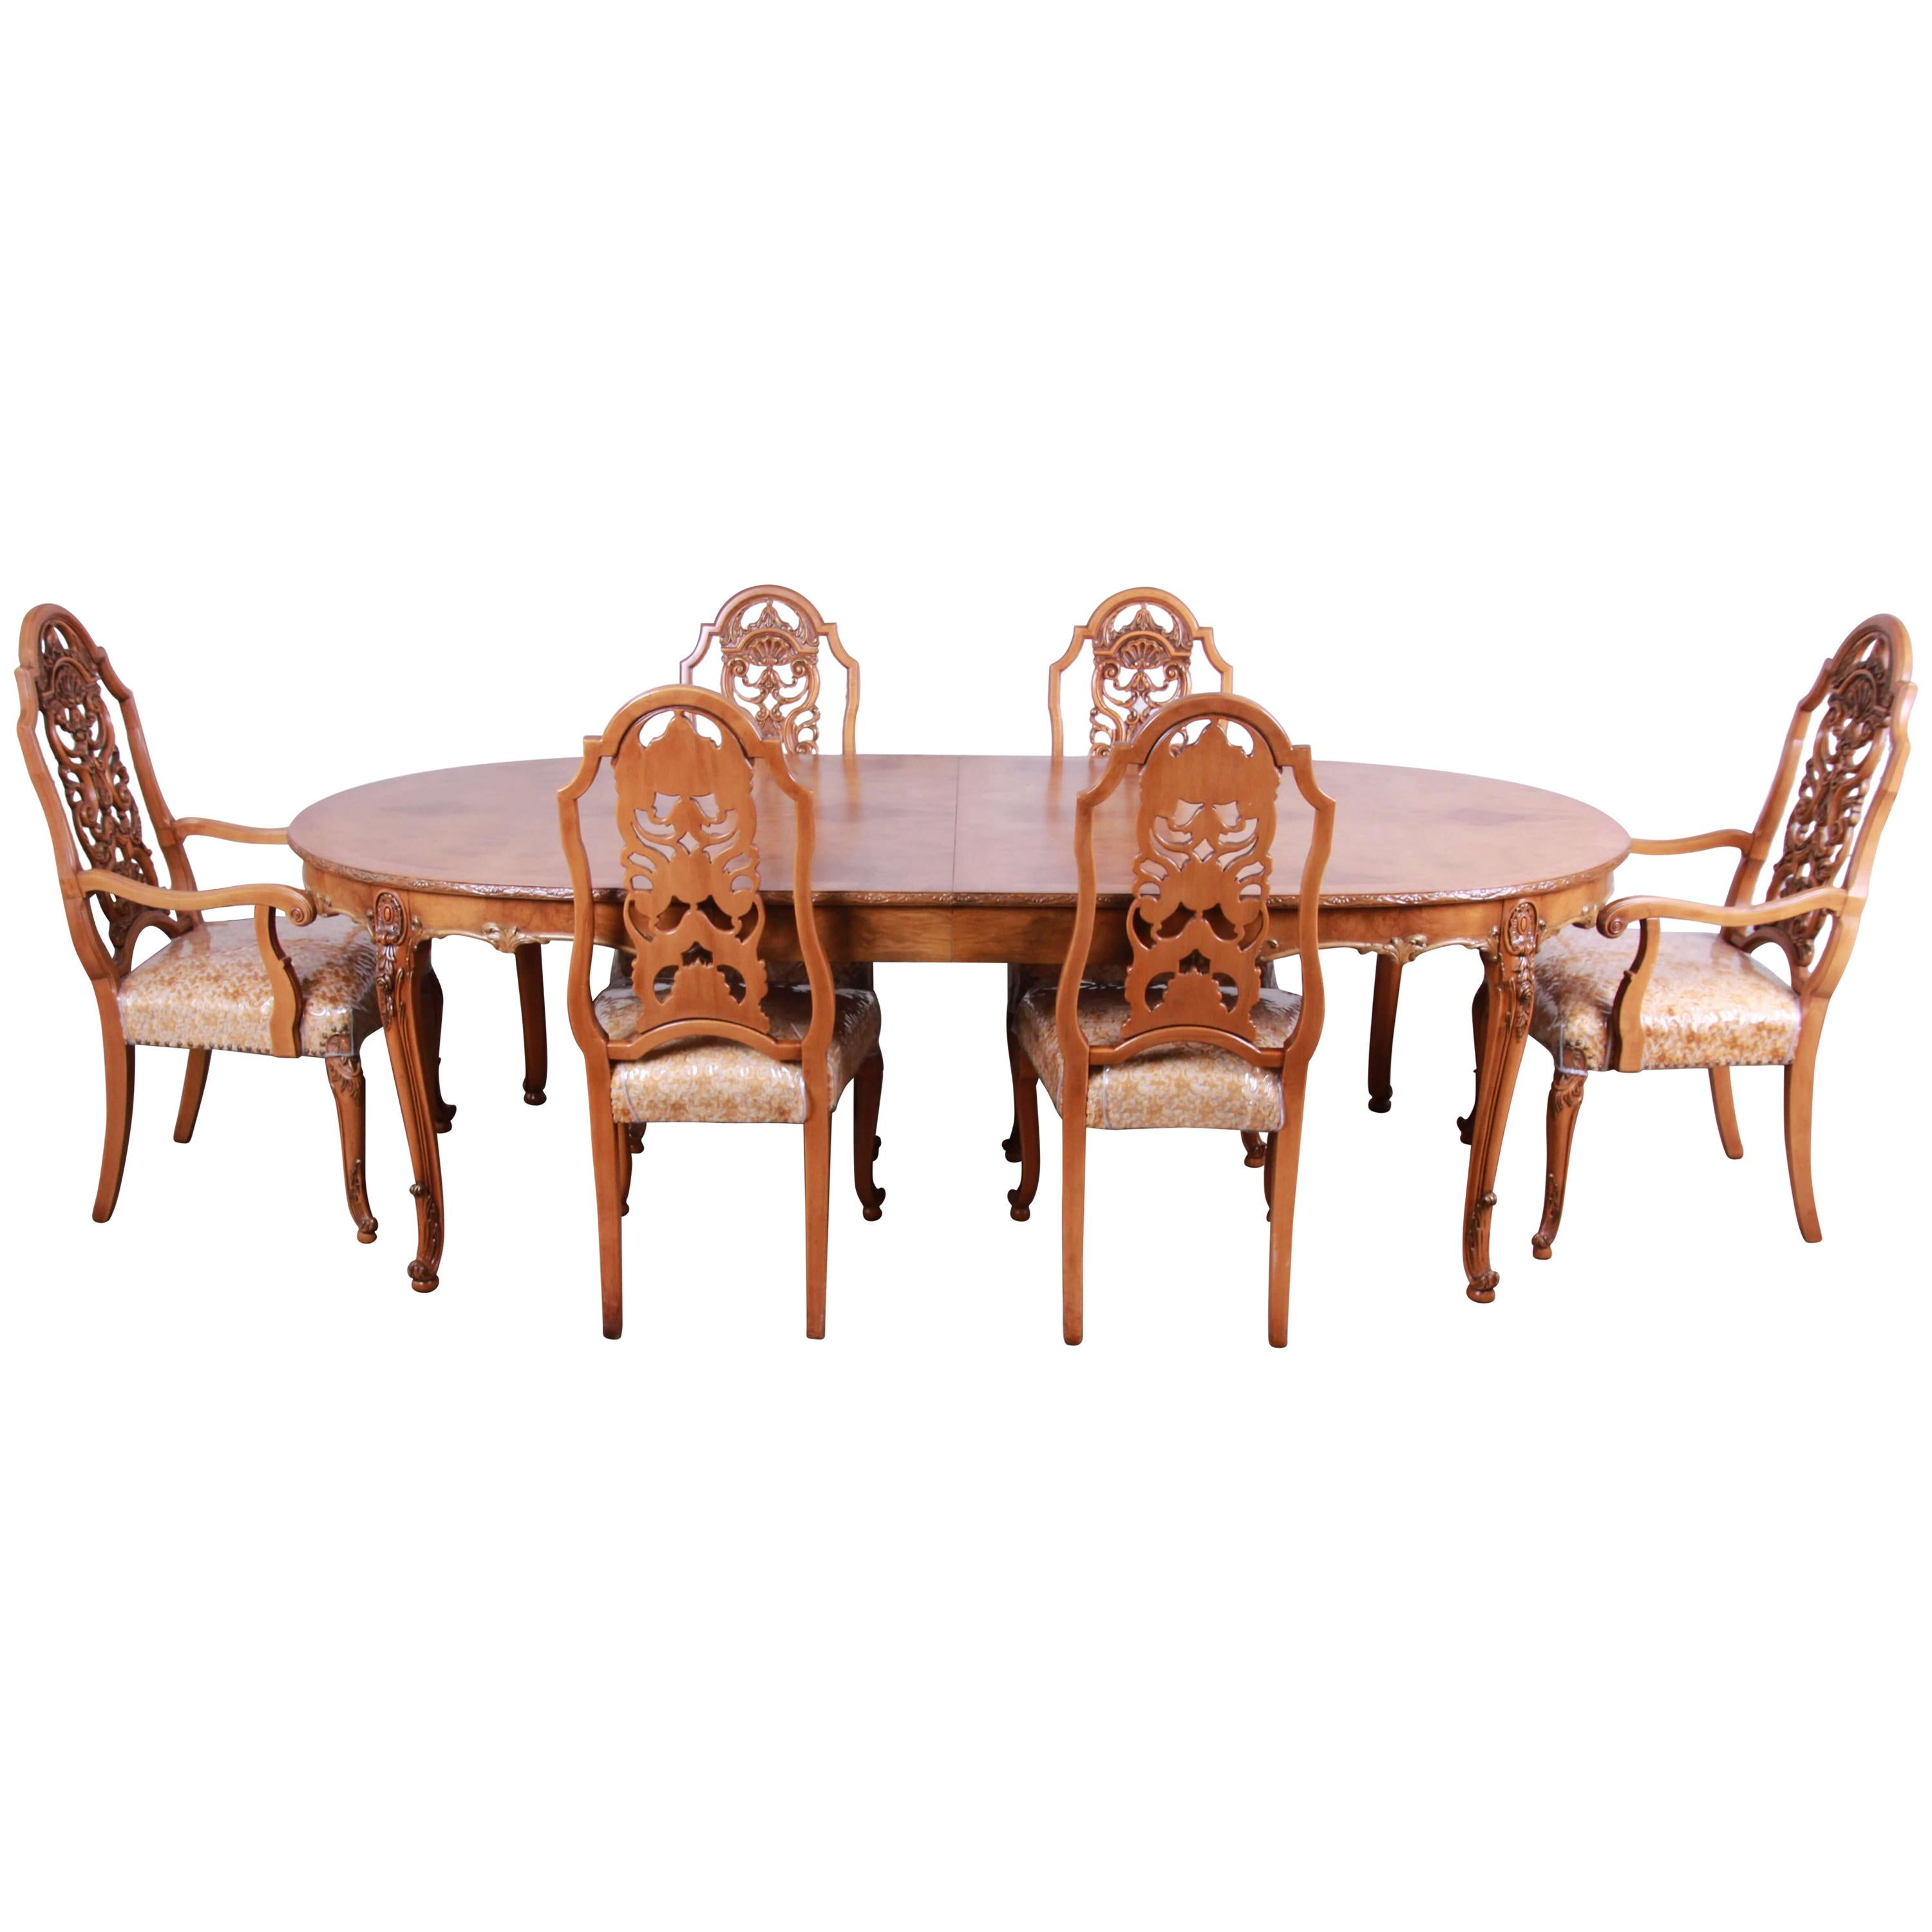 Genial Romweber Ornate Burl Wood French Carved Extension Dining Table U0026 Six Chairs